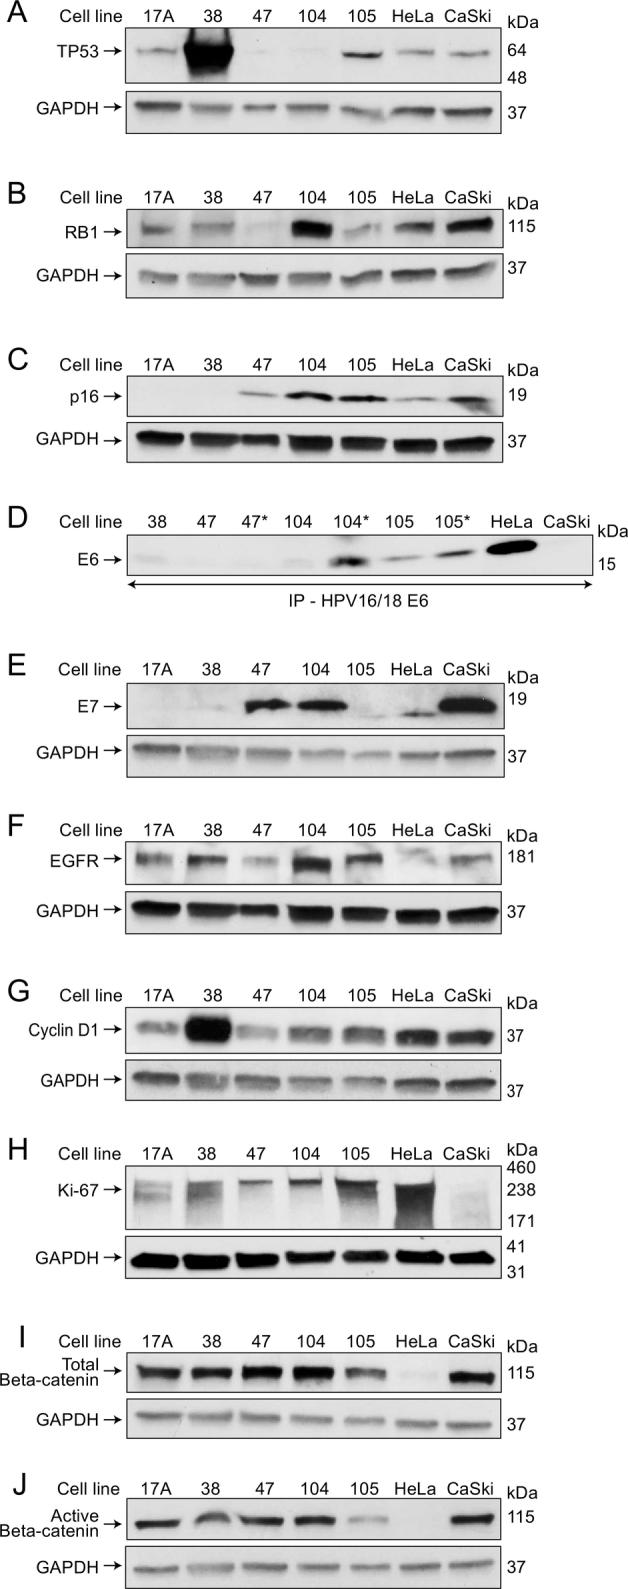 Biomarker expression by Western blotting during exponential growth phase. TP53 (A), RB1 (B), p16 (C), E6 (D), E7 (E), EGFR (F), Cyclin D1 (G), Ki-67 (H), total beta-catenin (I), and active beta-catenin (J). Protein was loaded at 50 μg per lane for all biomarkers except for total beta-catenin and active beta-catenin, which were loaded with 25 μg of protein. GAPDH was included as a loading control. (C and F) The same GAPDH staining was used since p16 and EGFR were probed from the same blot. (D) E6 was the only protein that was immunoprecipitated prior to WB due to its weaker expression. As a result, it was not possible to show a loading control. E6 was probed both in early (days 5-6) and later exponential growth phase (days 9-10, indicated by *). (G) Cyclin D1 staining was stripped to detect GAPDH.